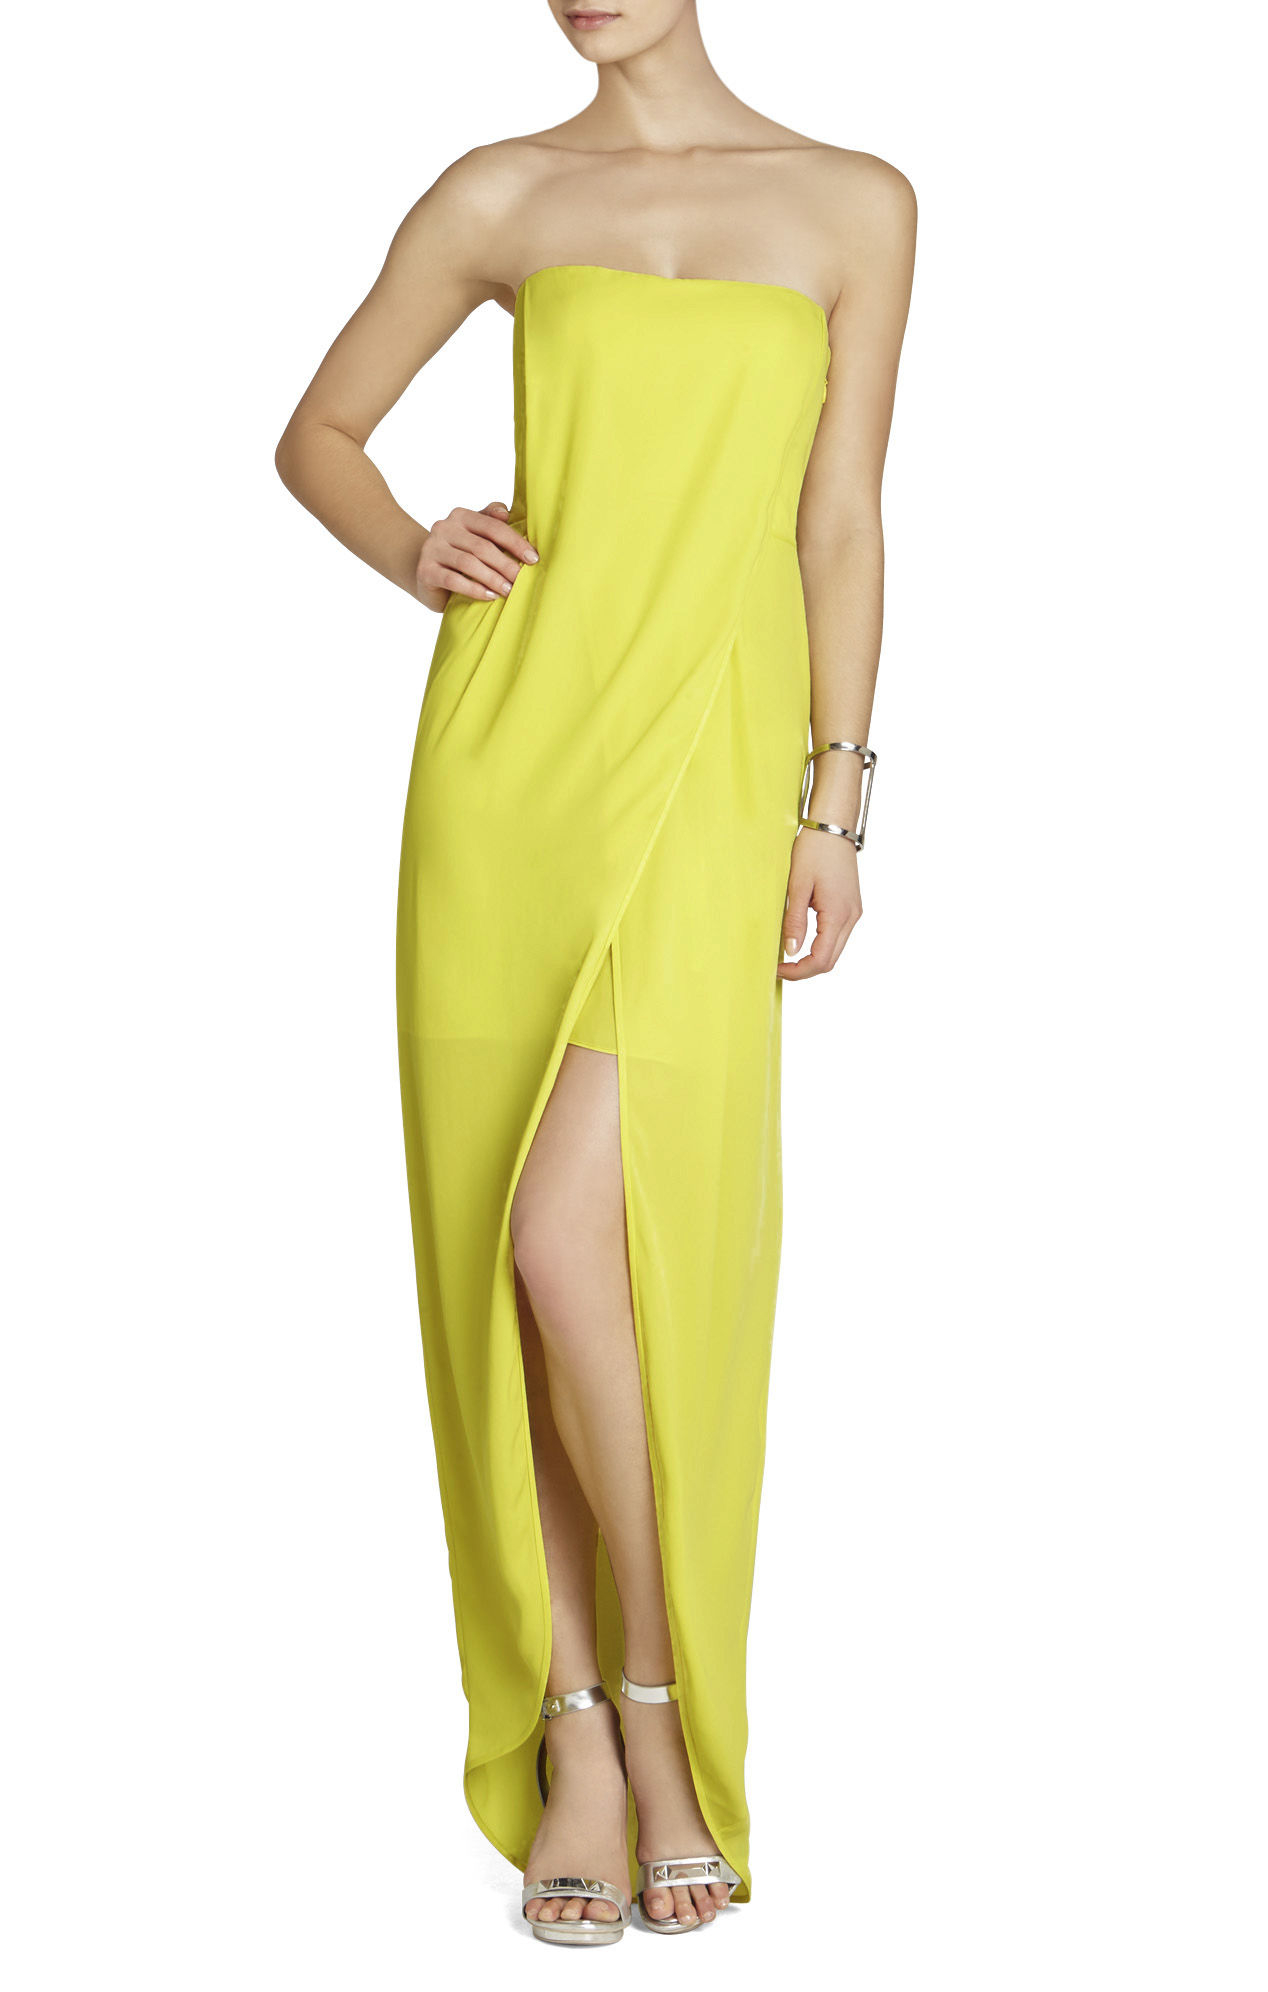 5b63ae6dce31 BCBGMAXAZRIA Jesse Draped Strapless Gown in Yellow - Lyst